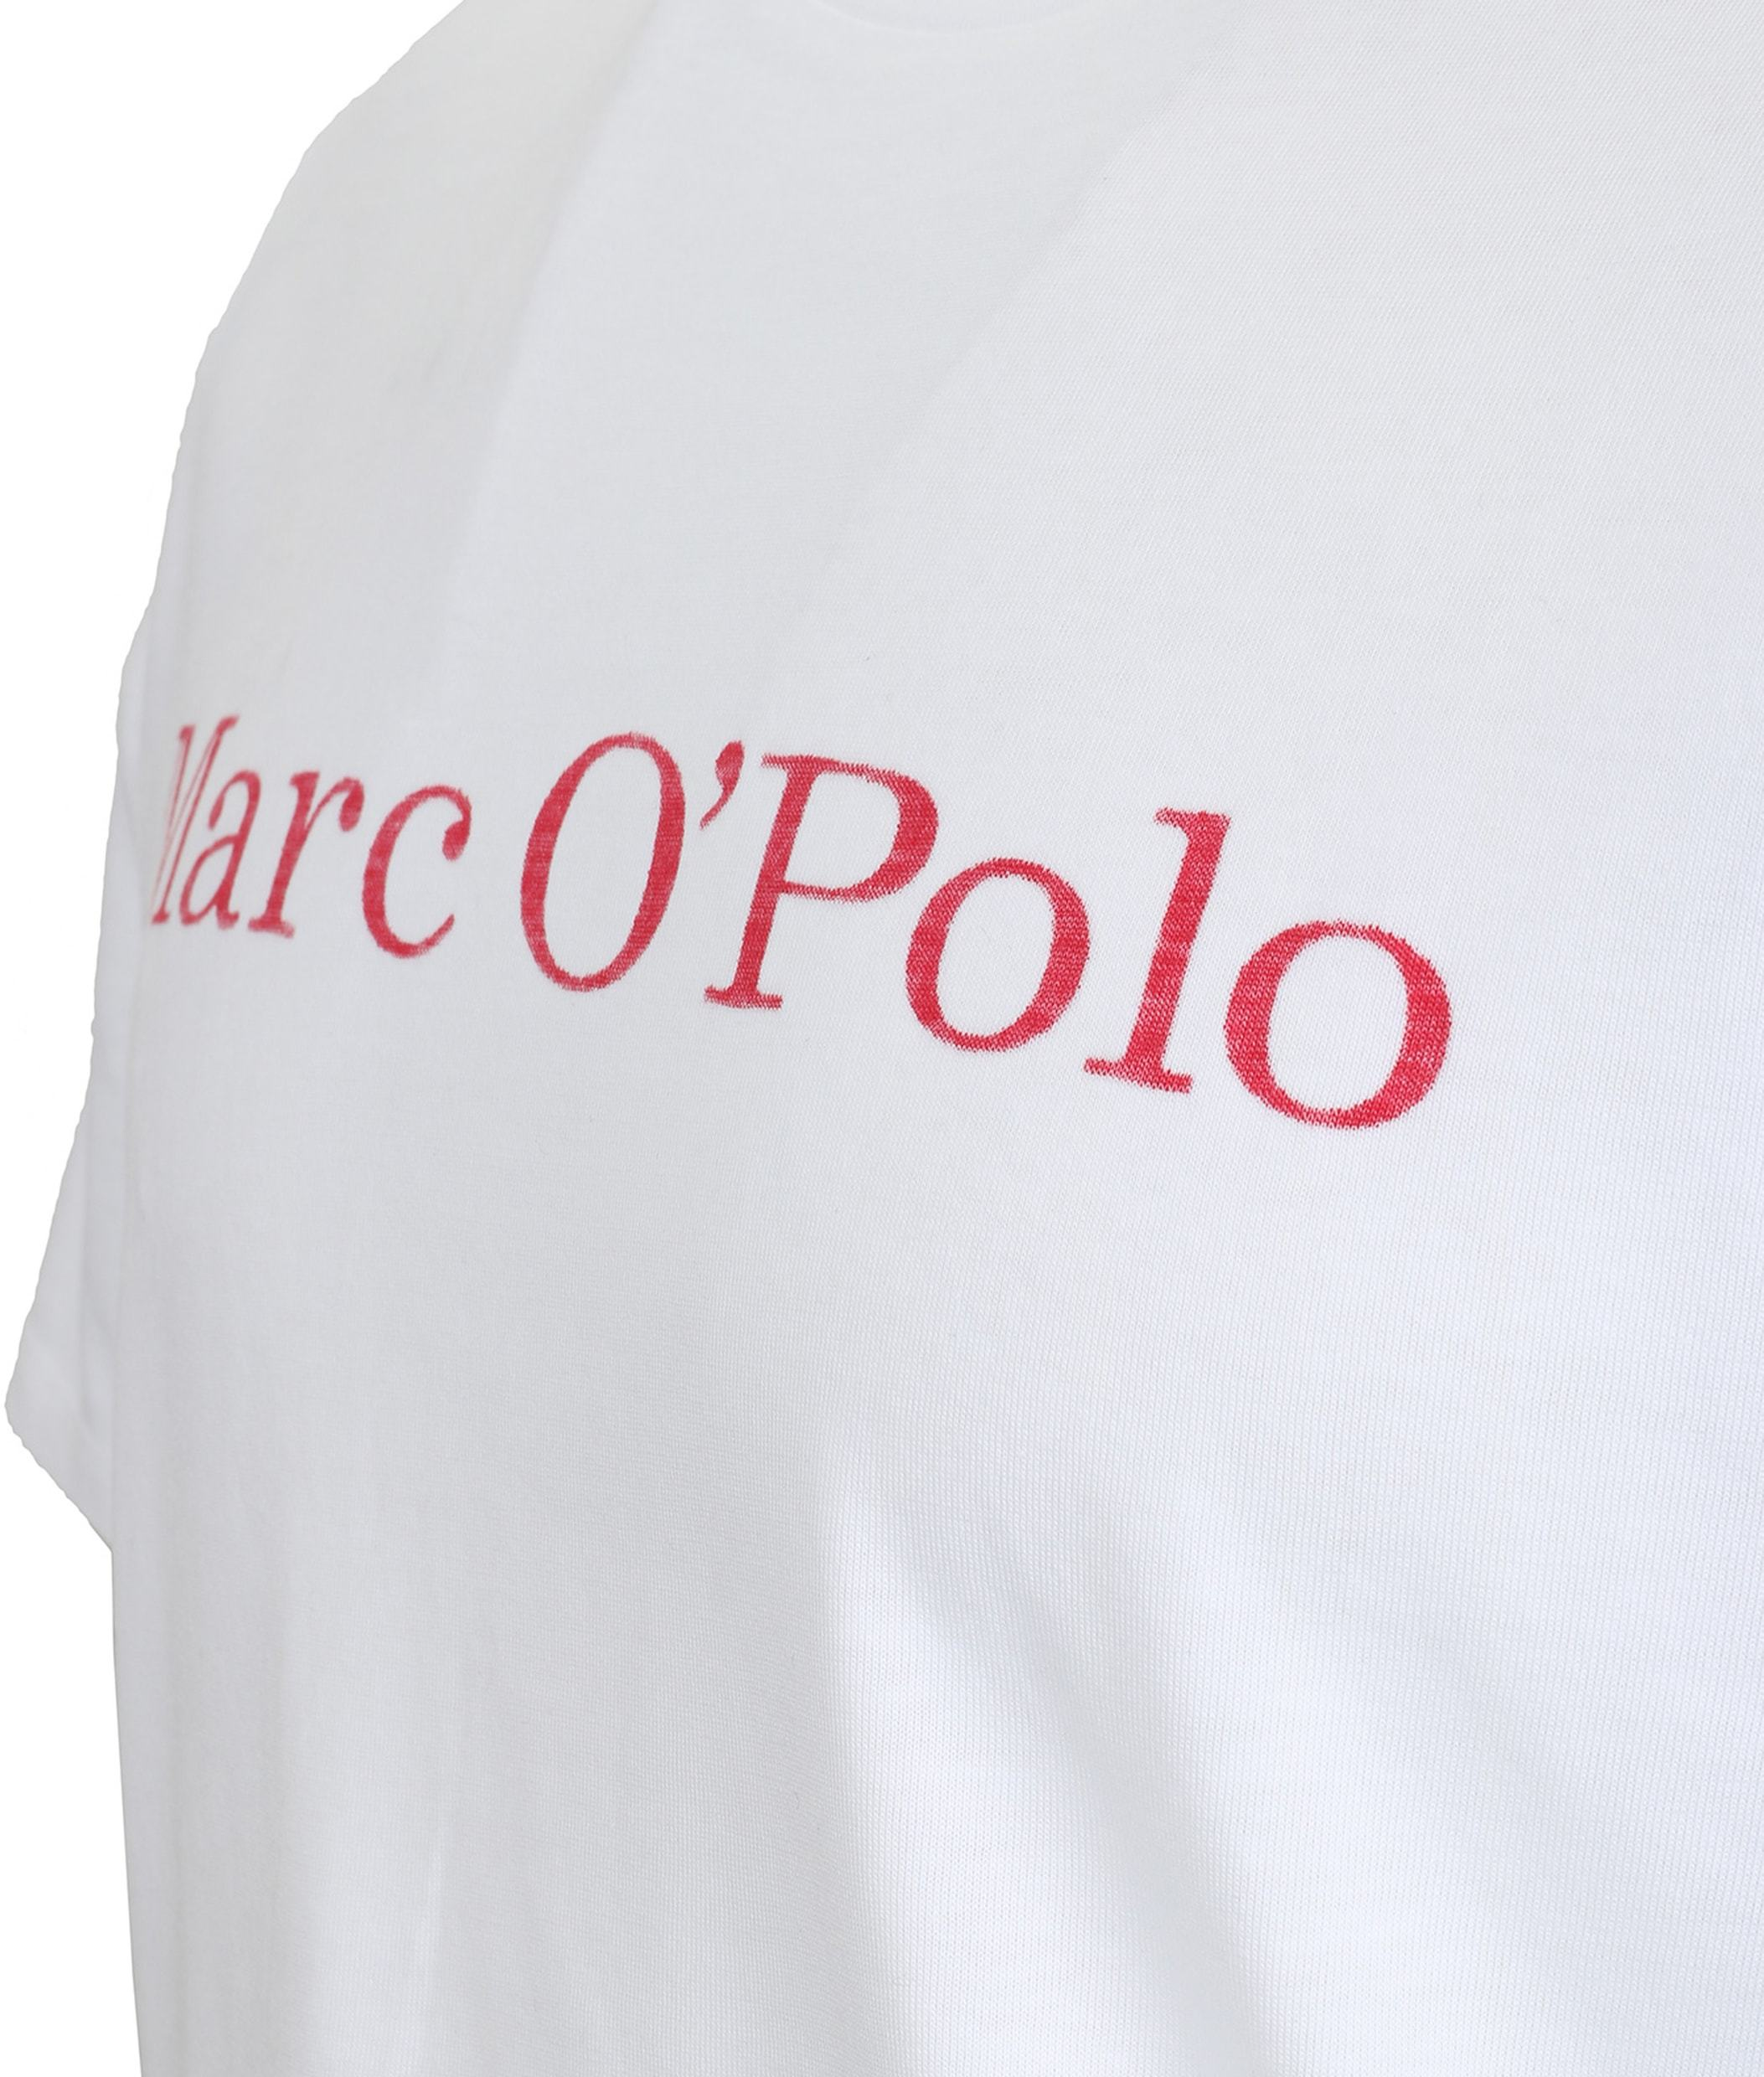 Marc O'Polo T-Shirt Weiß foto 1